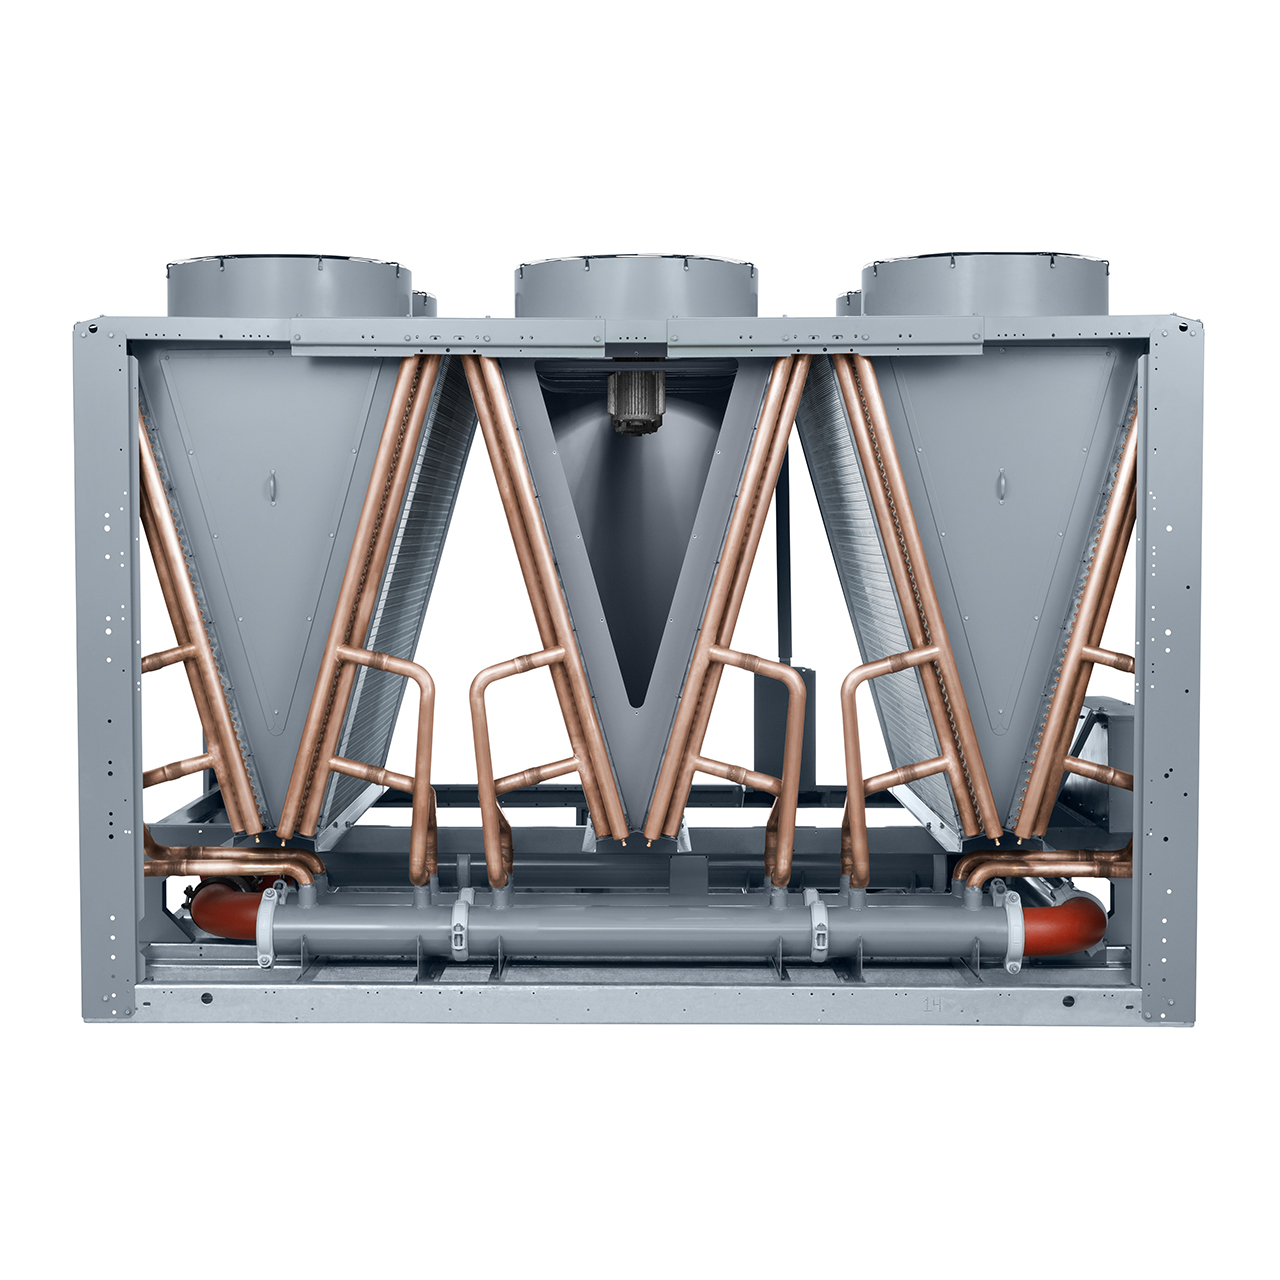 carrier-30XV-air-cooled-liquid-chiller-economizer